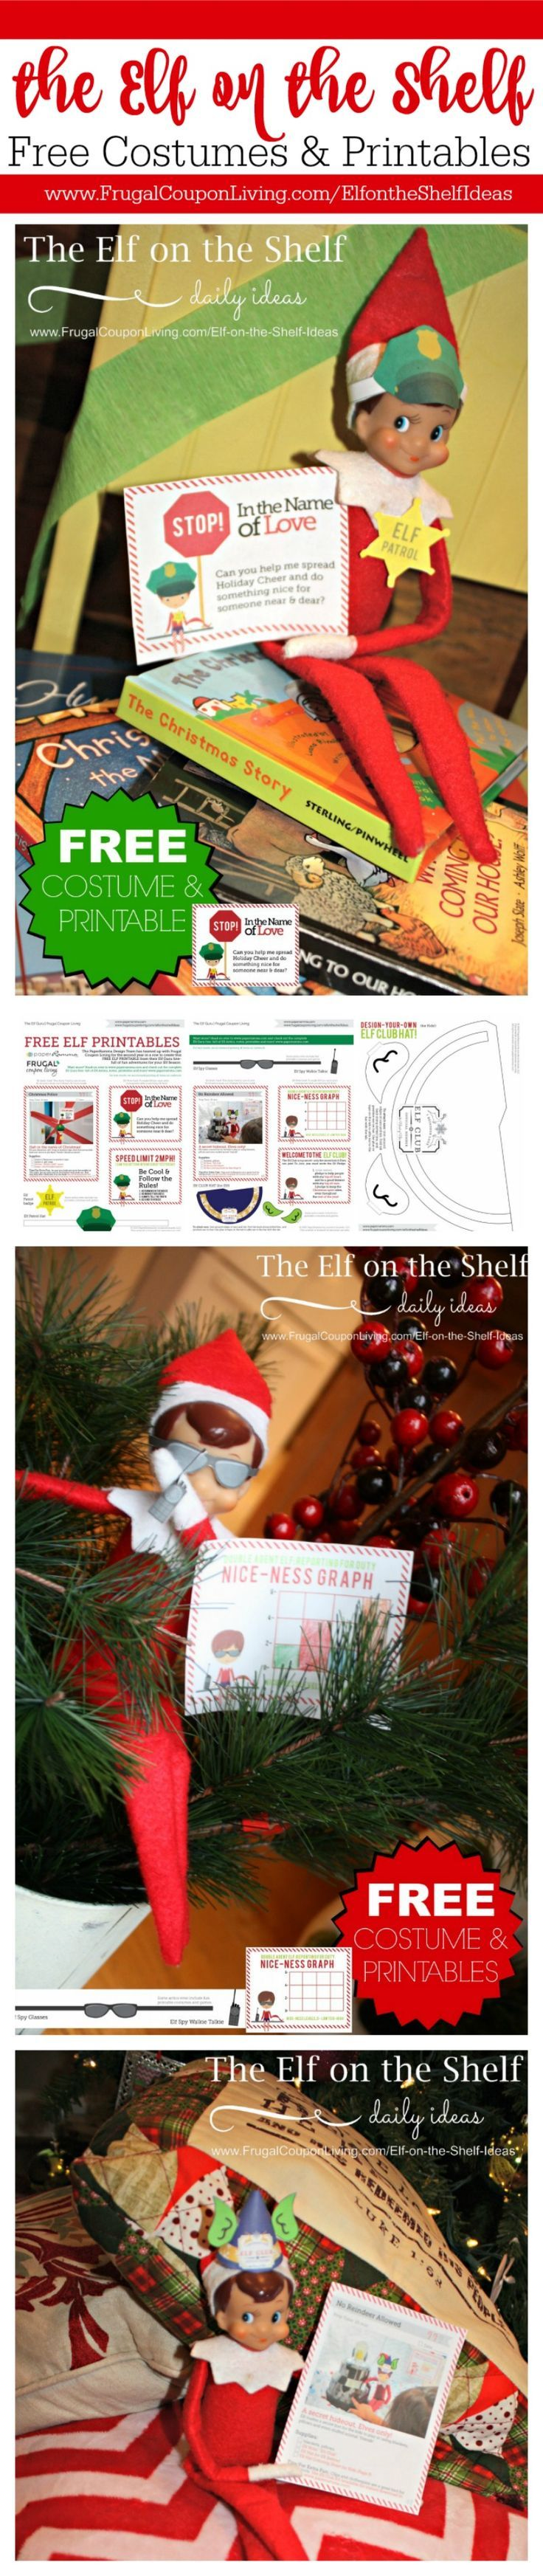 Top 50 elf on the shelf ideas i heart nap time - 100s Of Daily Elf On The Shelf Ideas And Printable Costumes And Notes On Frugal Coupon